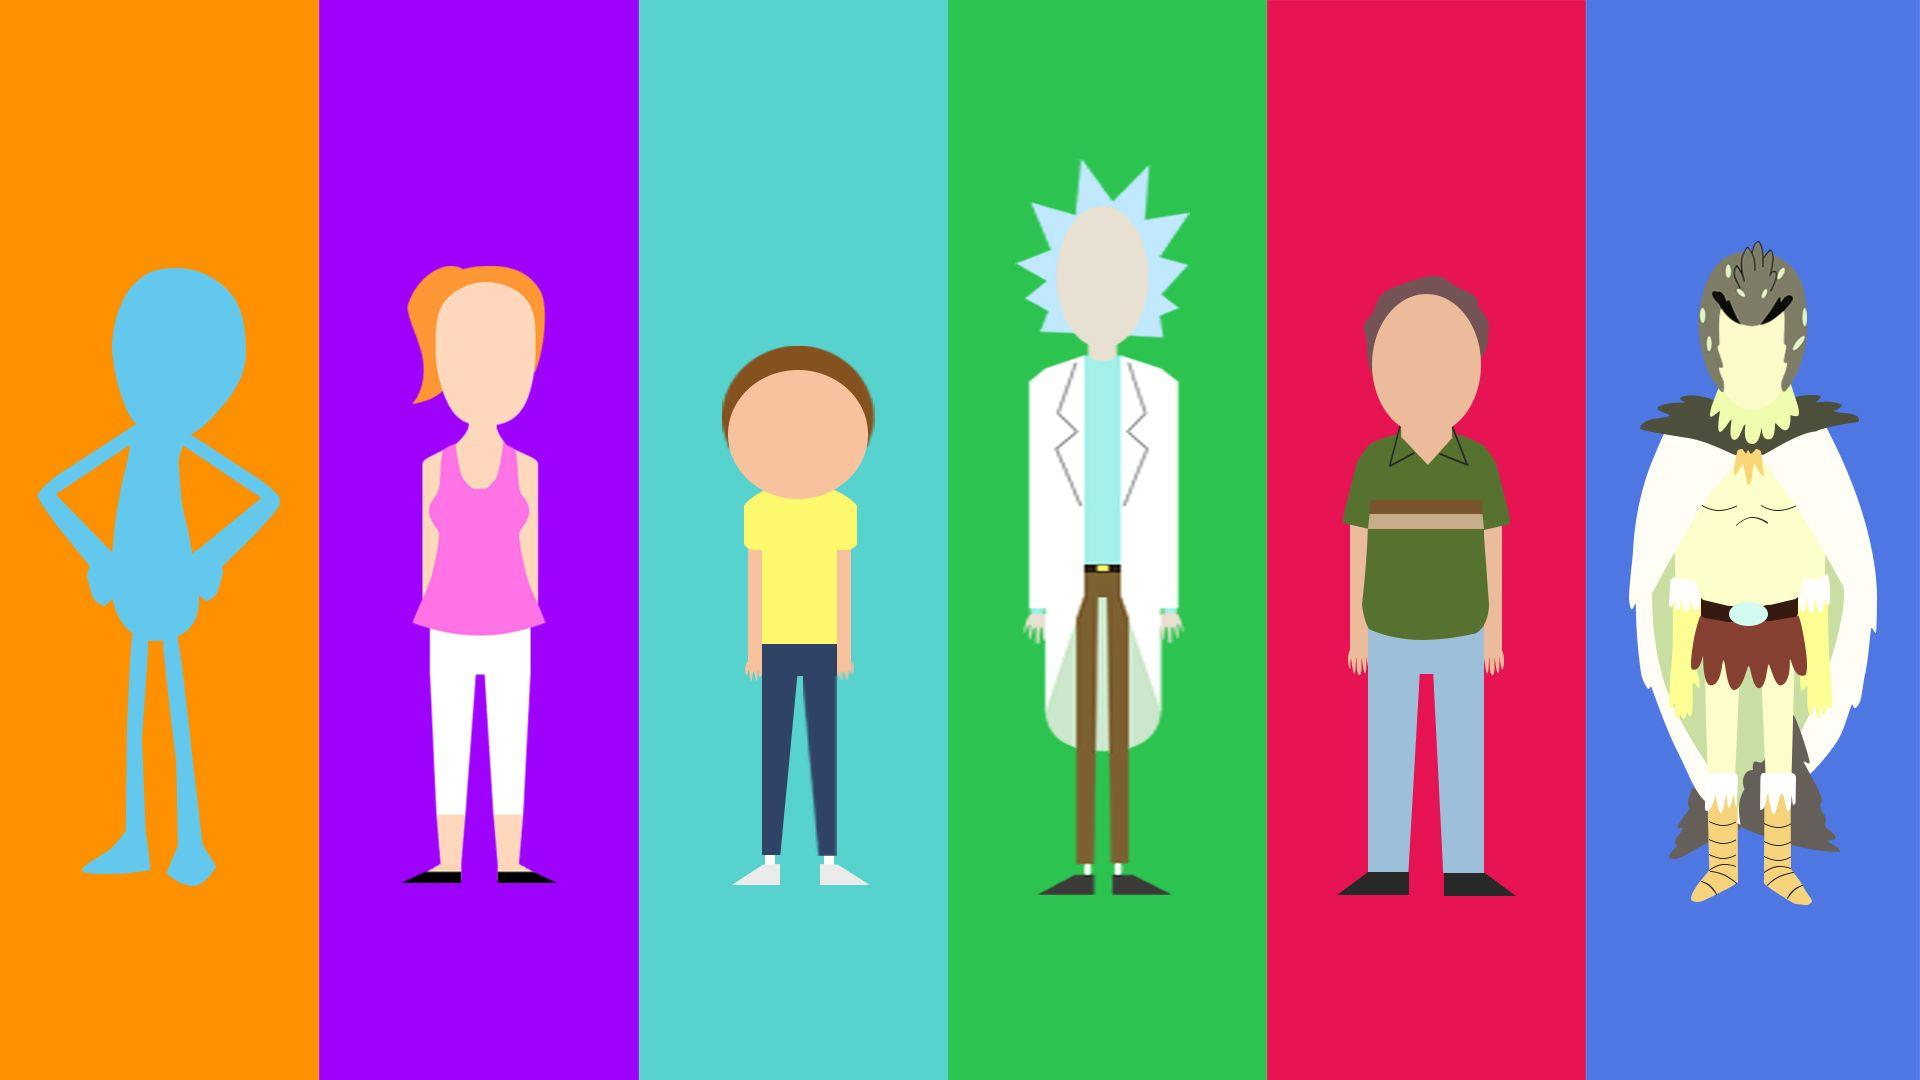 My minimalist Rick and Morty character collection - Album on Imgur